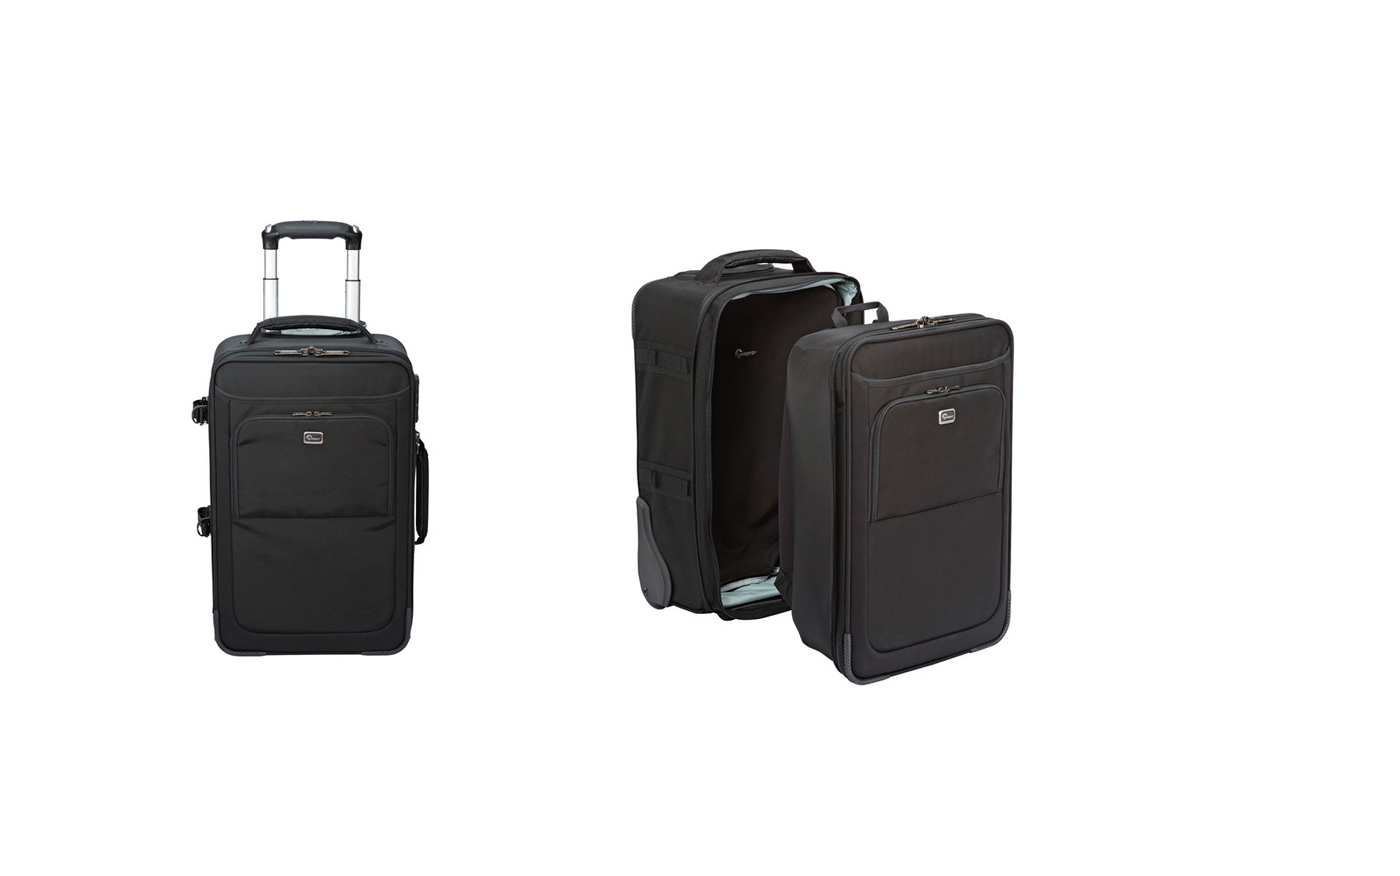 Lowepro Roller x200 - The shell comes off and the interior becomes a backpack.